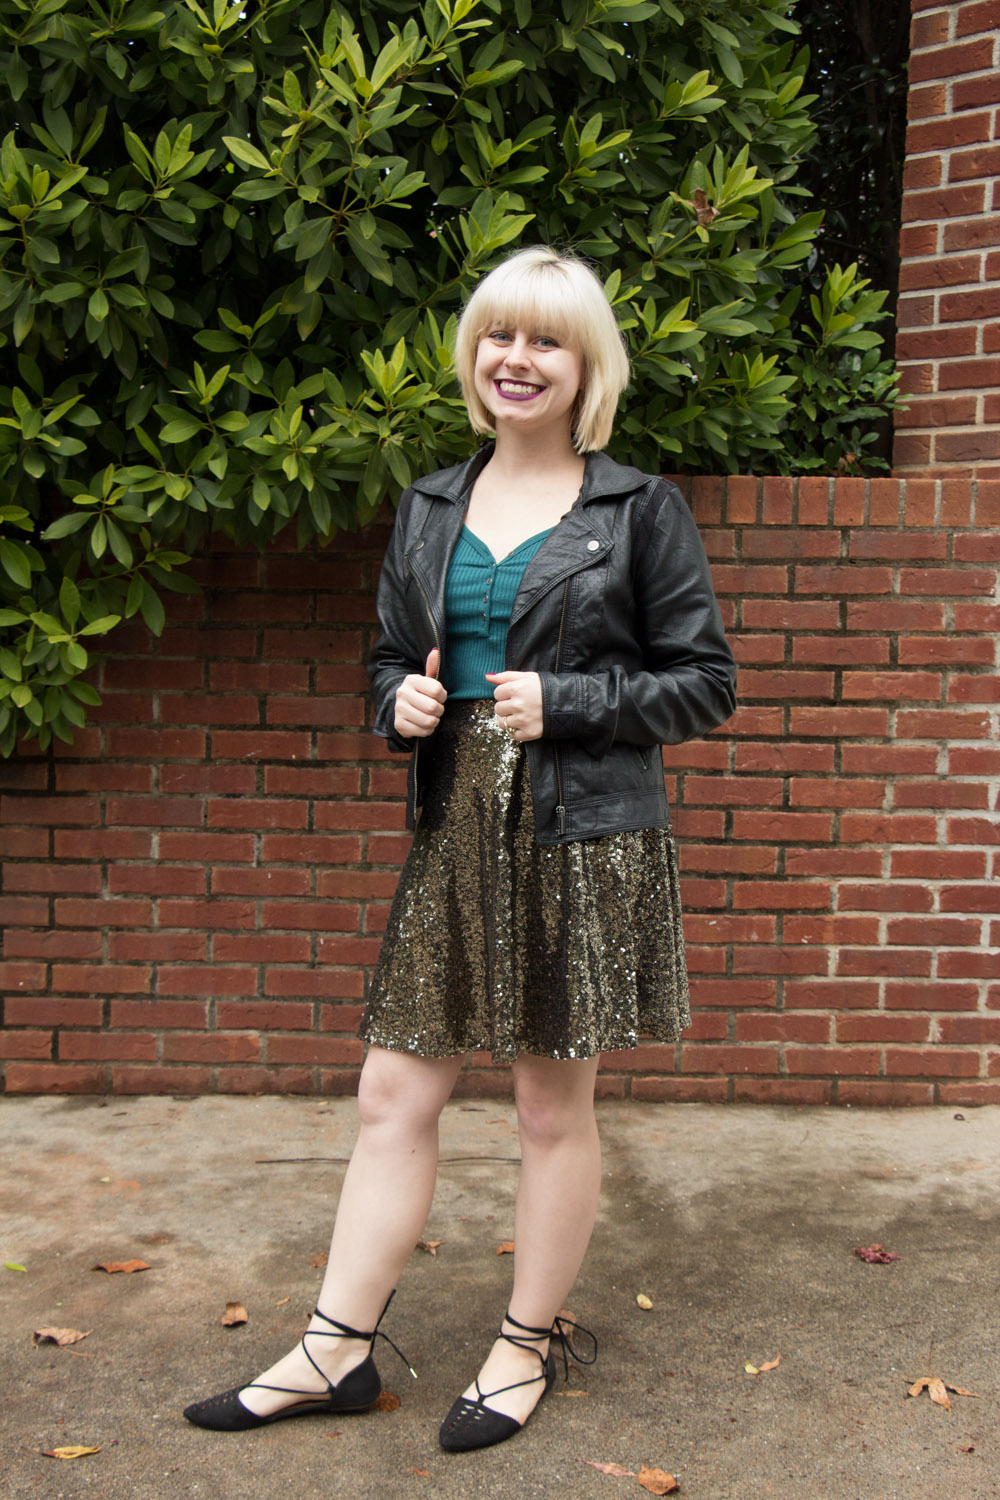 The Fringe Off Collaboration Antique Gold Sequined Skirt Green Henley and Lace Up Flats